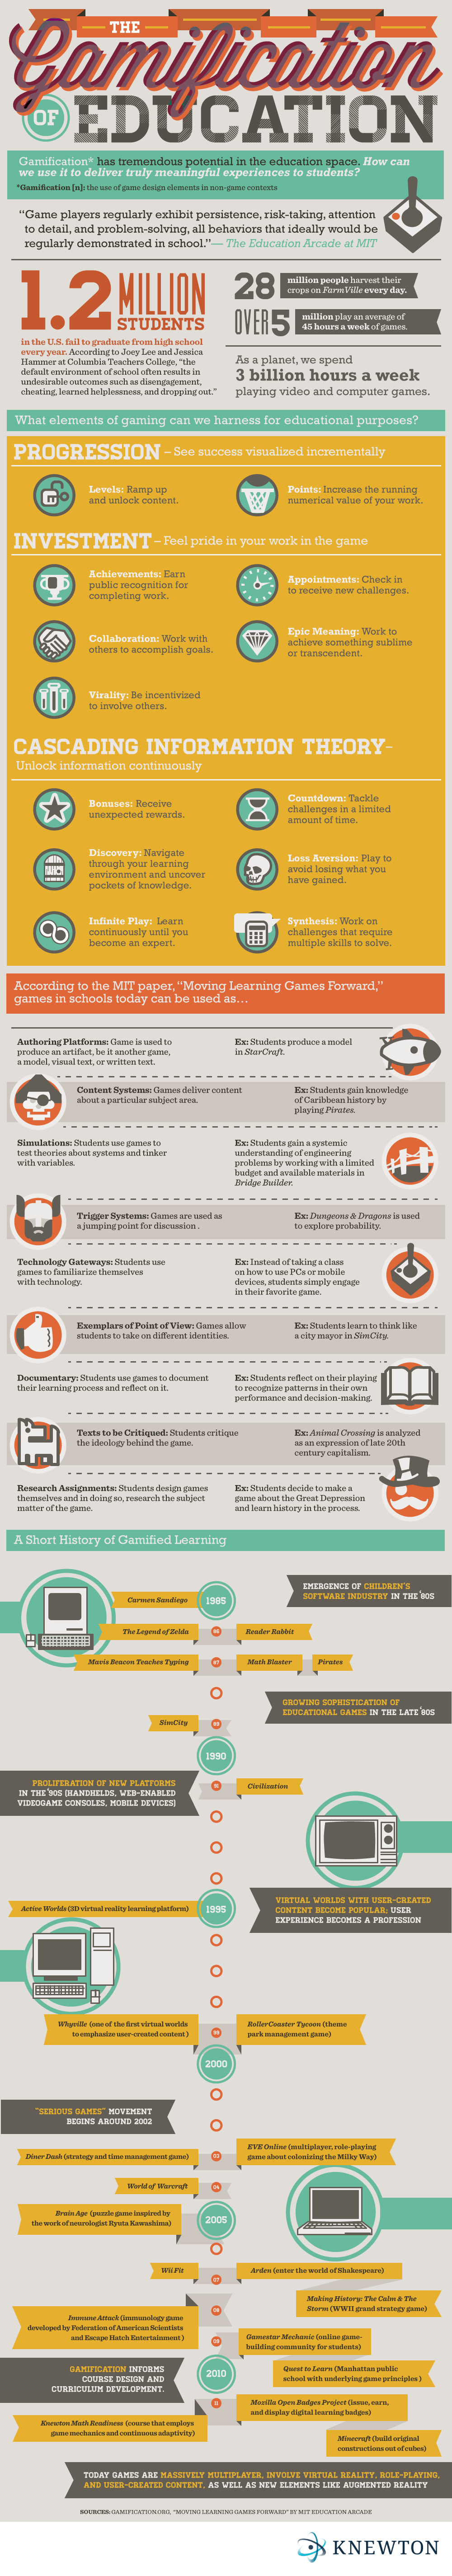 The-Gamification-of-Education-Infographic